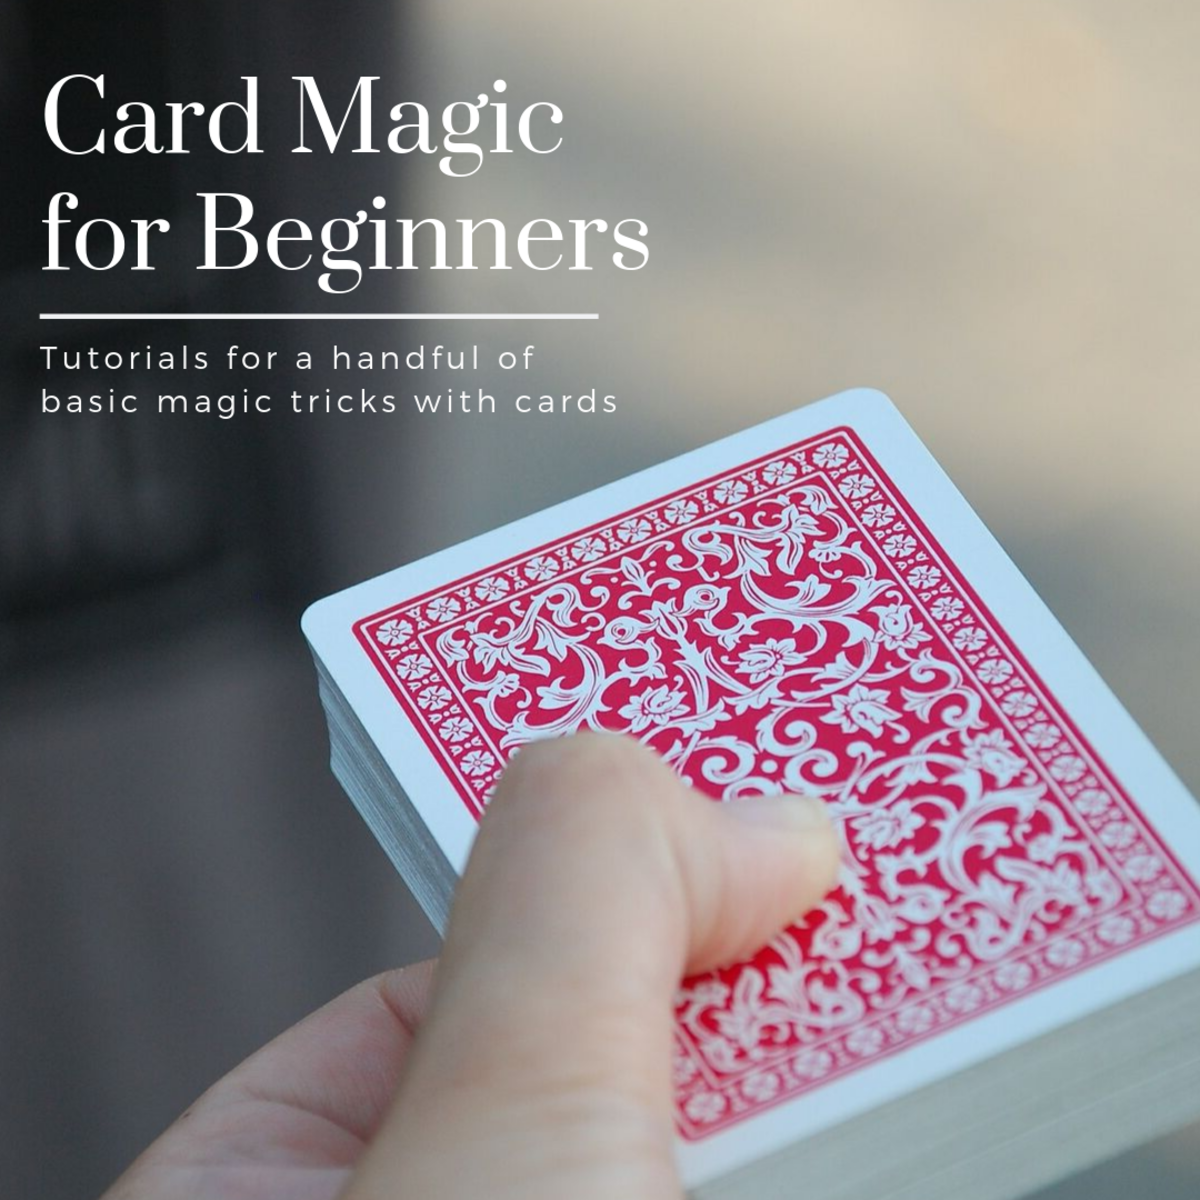 Check out these tutorials for some basic card magic tricks.